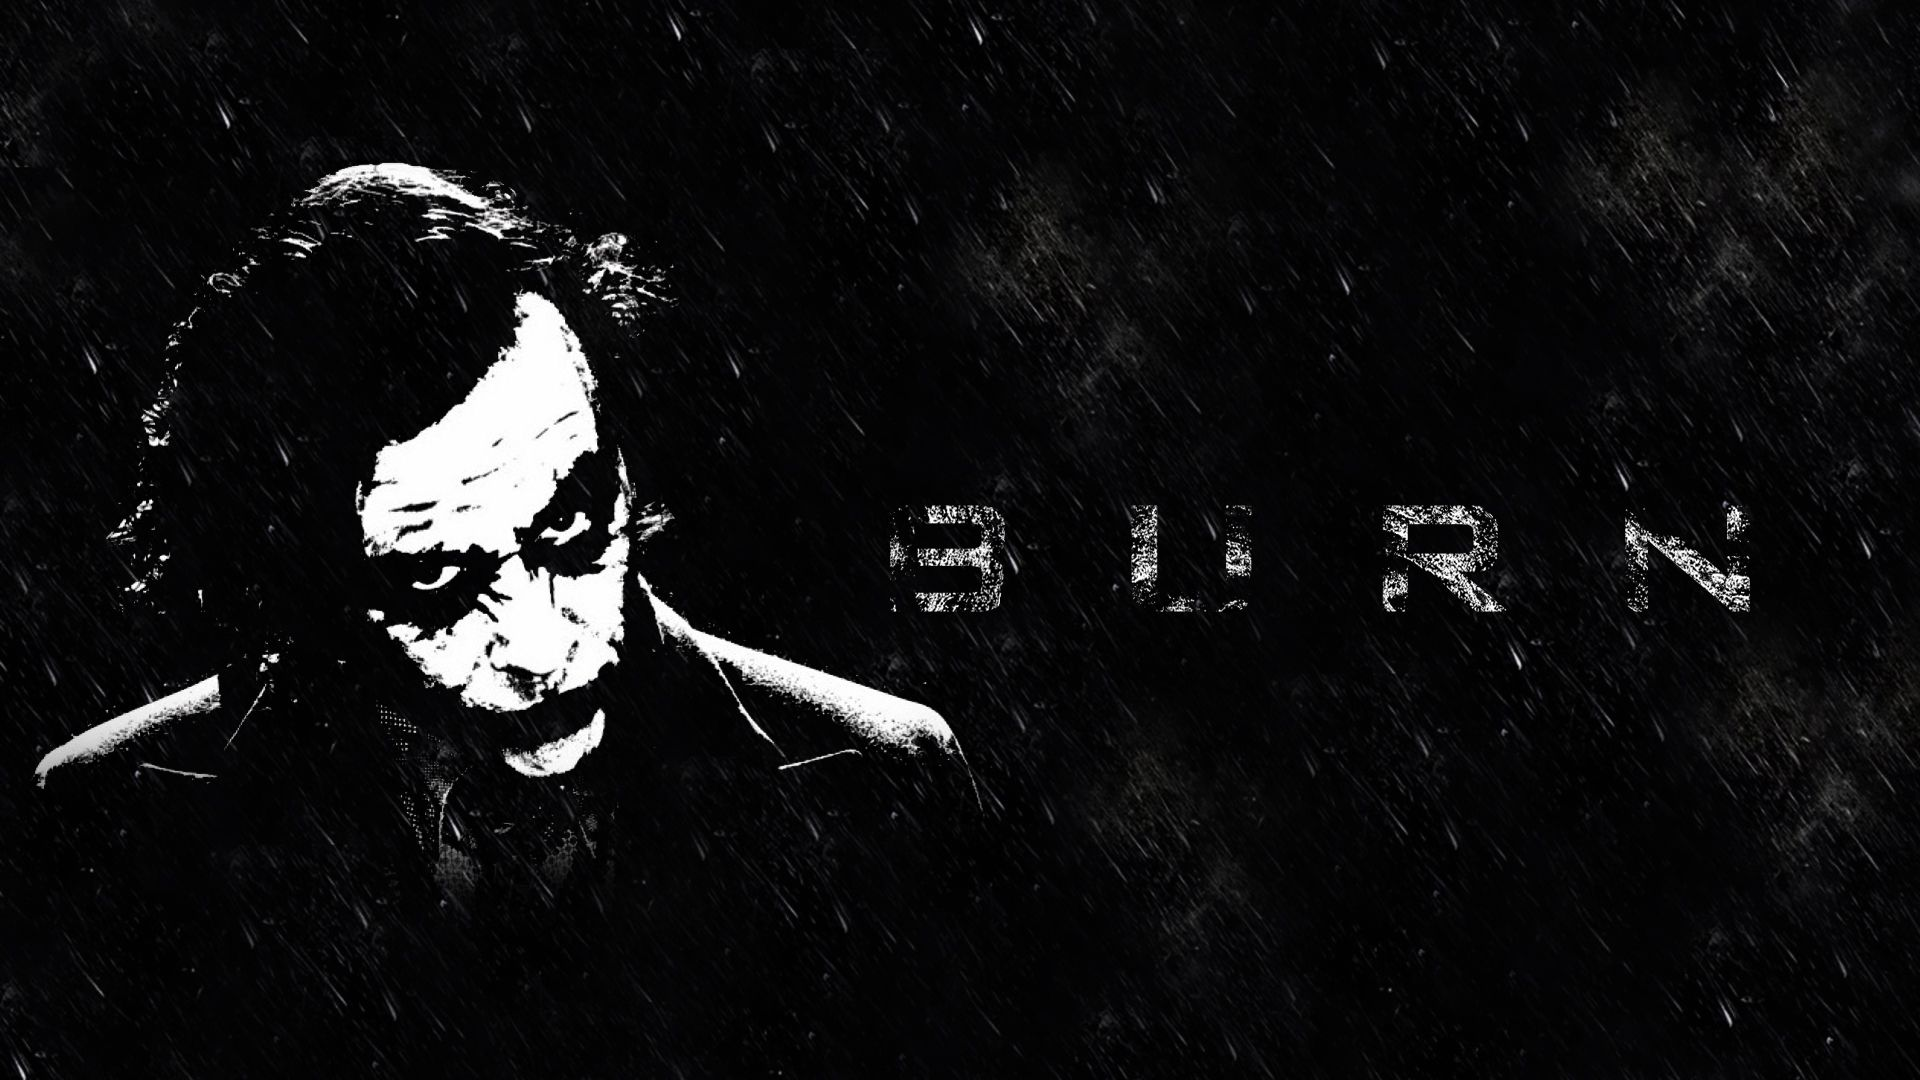 The Dark Knight Joker Wallpaper HD 1920x1080 Px 84478 KB Movie1920x1080 Face Arkham